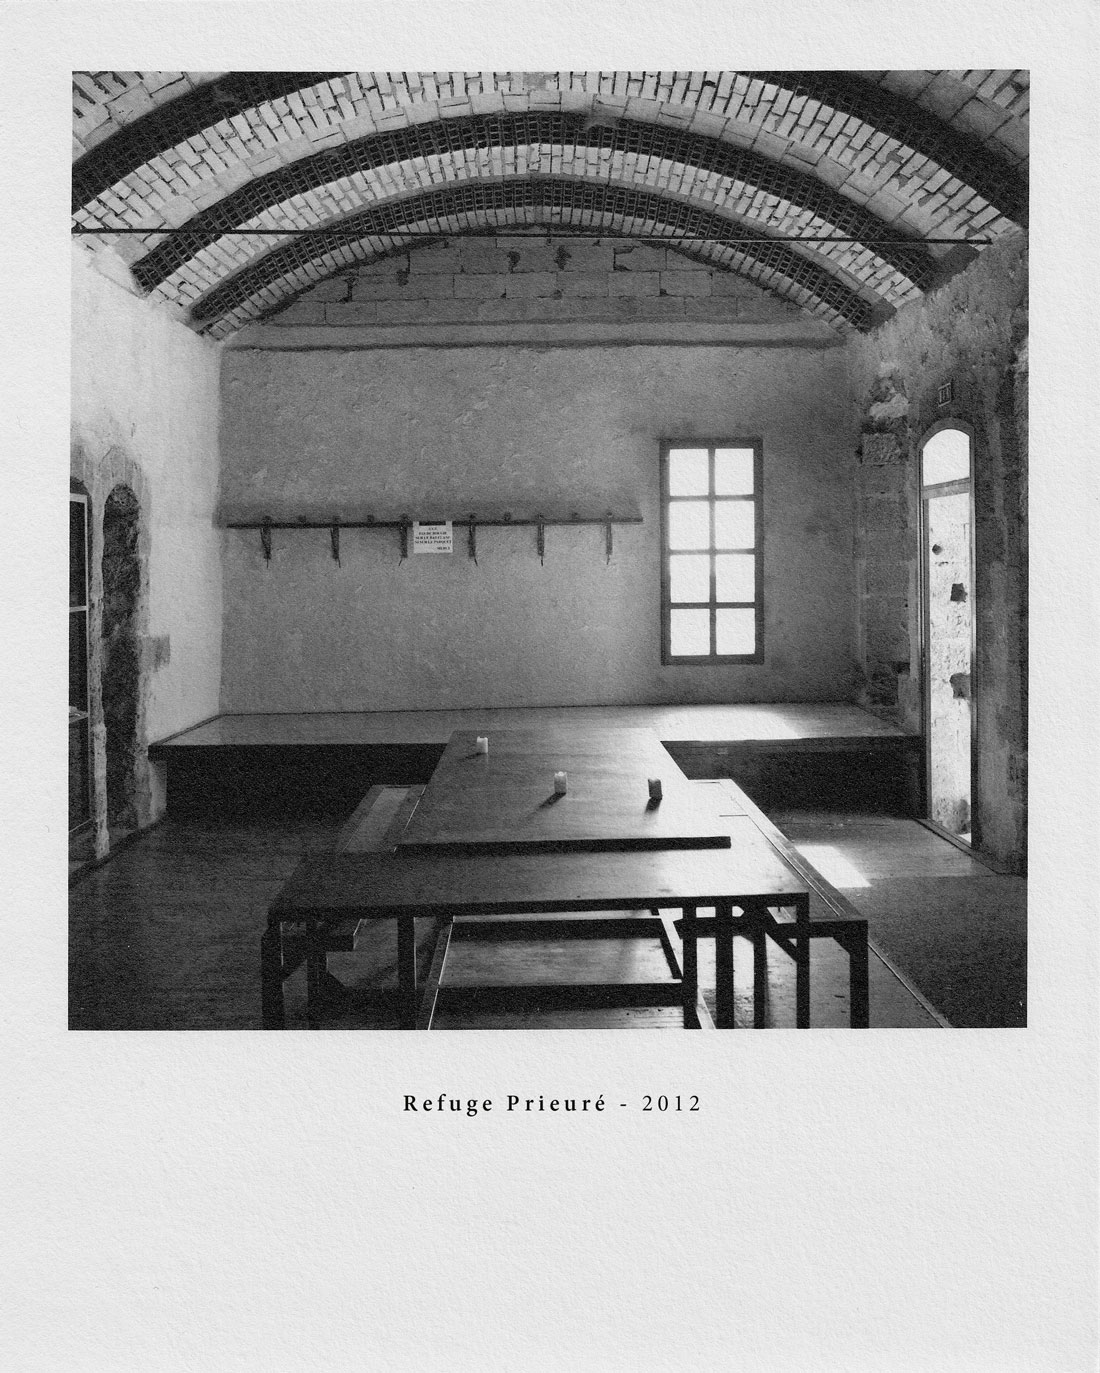 20-Refuge-Prieuré-interieur